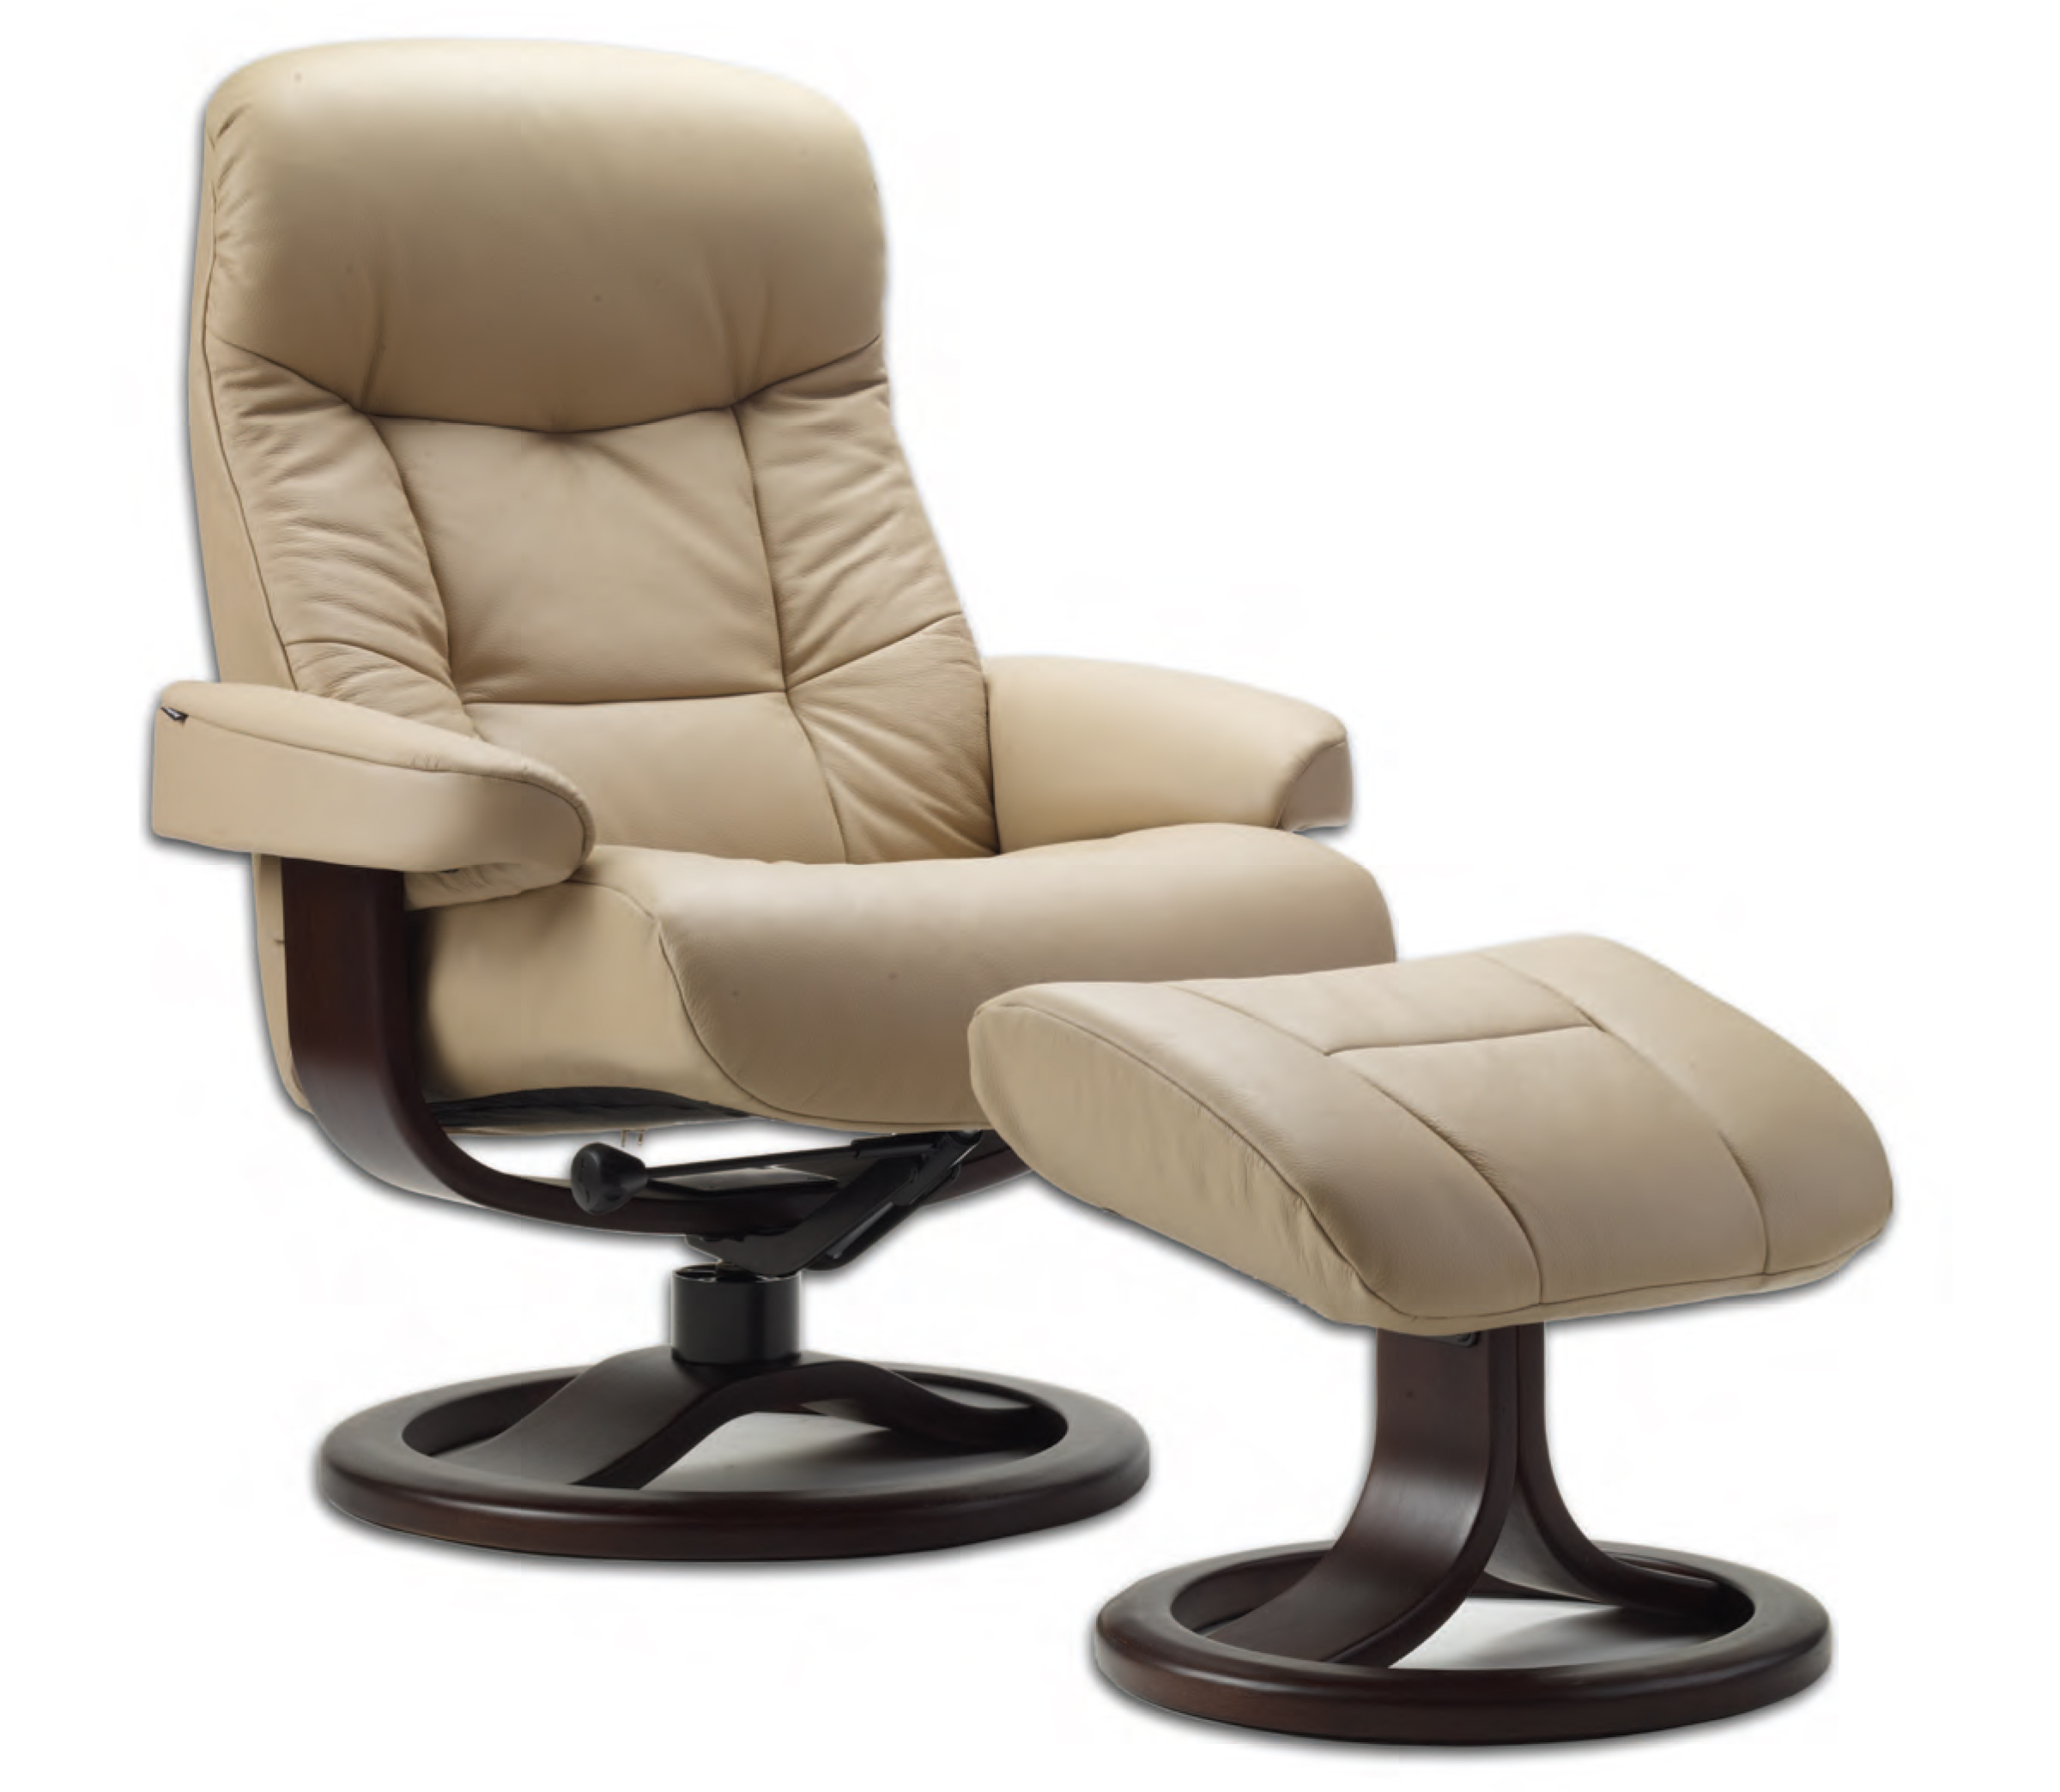 ergonomic chair and ottoman ultrasound fjords 215 muldal leather recliner